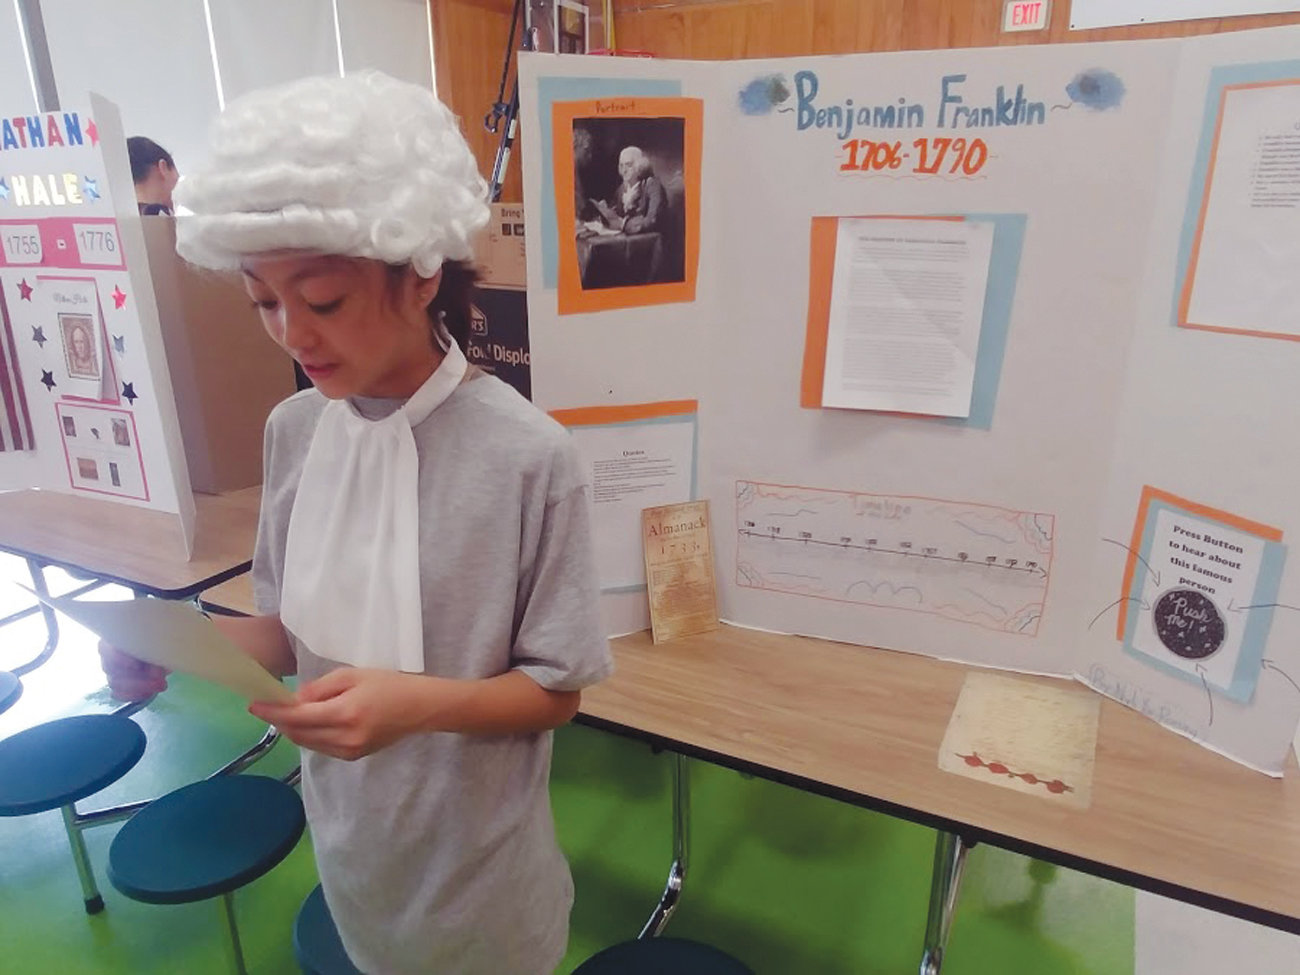 BEN FRANKLIN: Nylie You-Roeung portrayed Ben Franklin and during her presentation. She spoke of Franklin's strong writing skills.